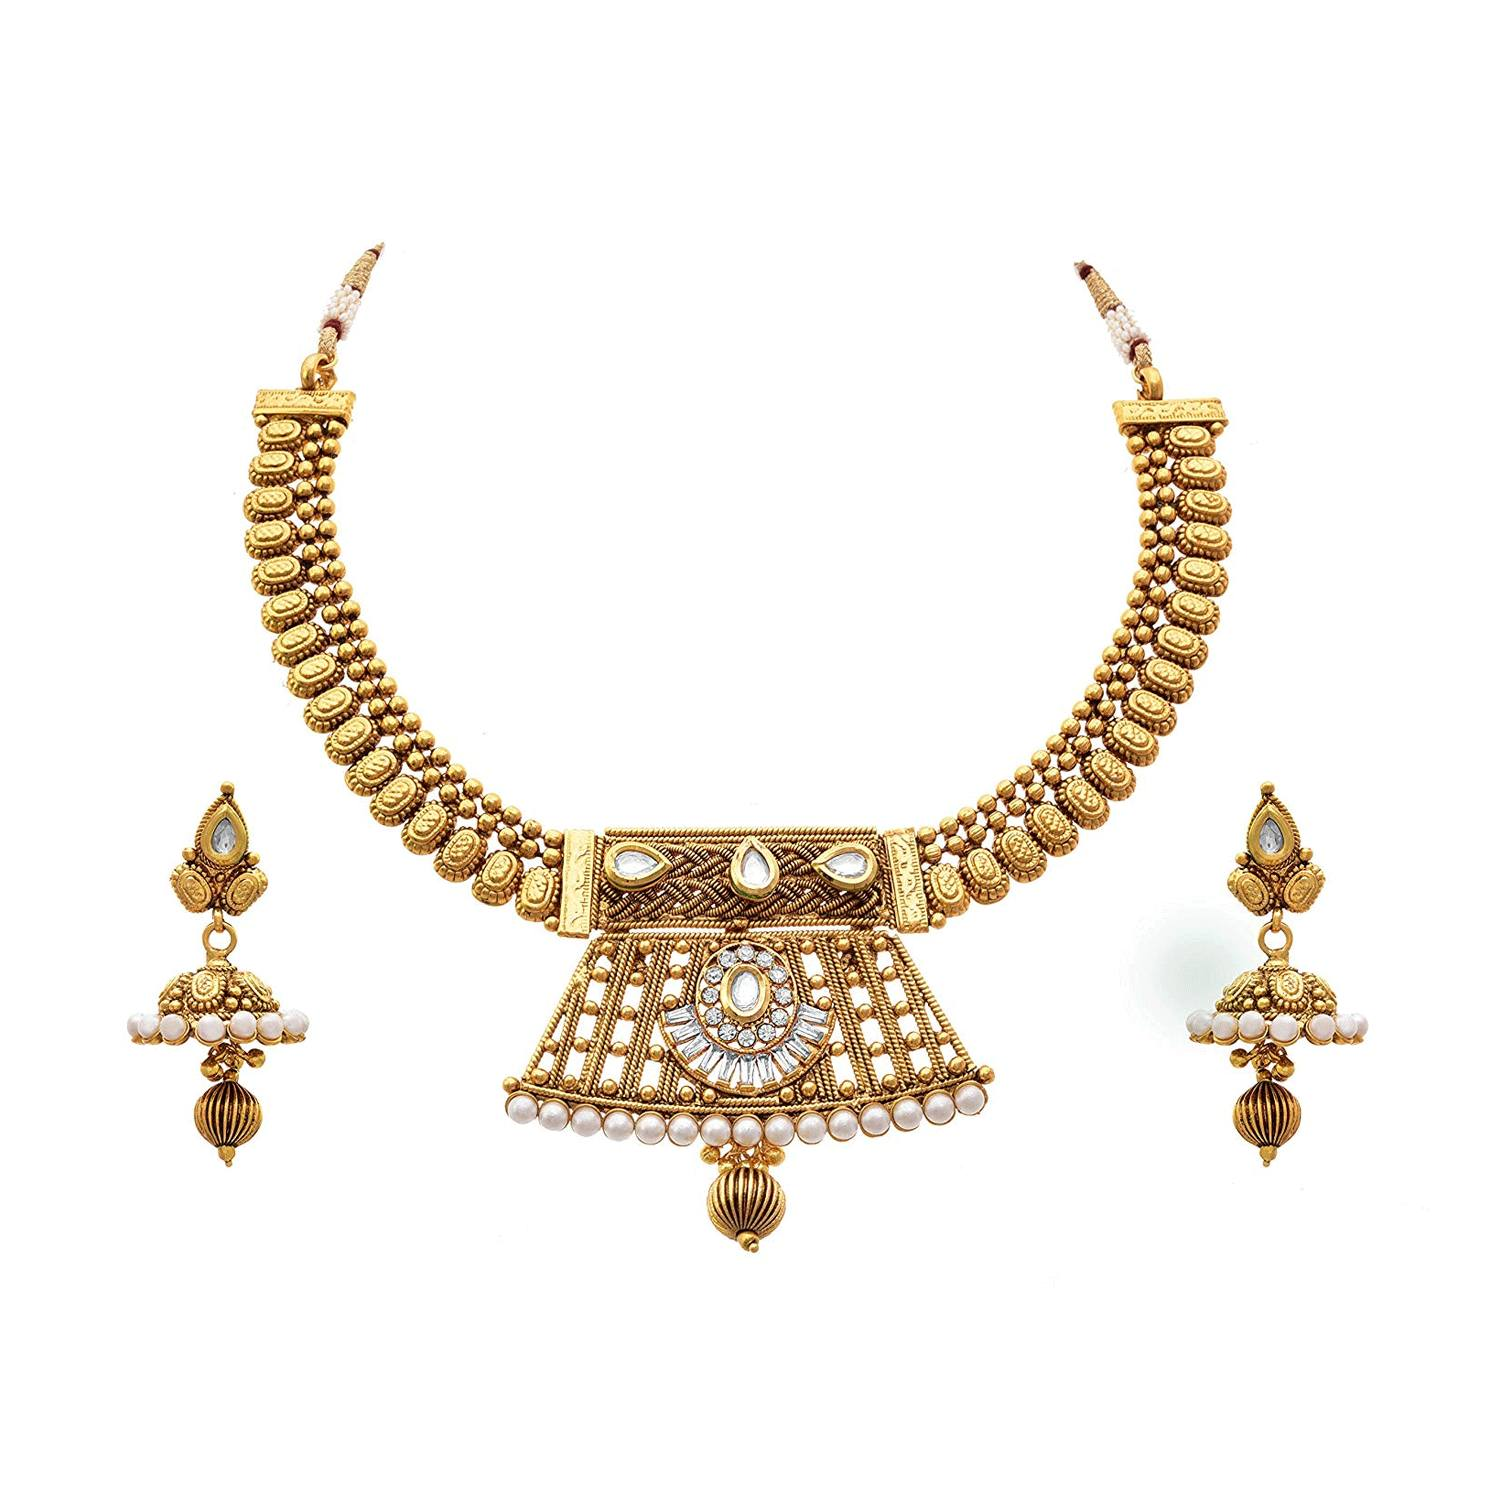 JFL - Traditional Ethnic One Gram Gold Plated Kundan, Pearls & Diamonds Designer Necklace Set with Jhumka Earring for Women & Girls.